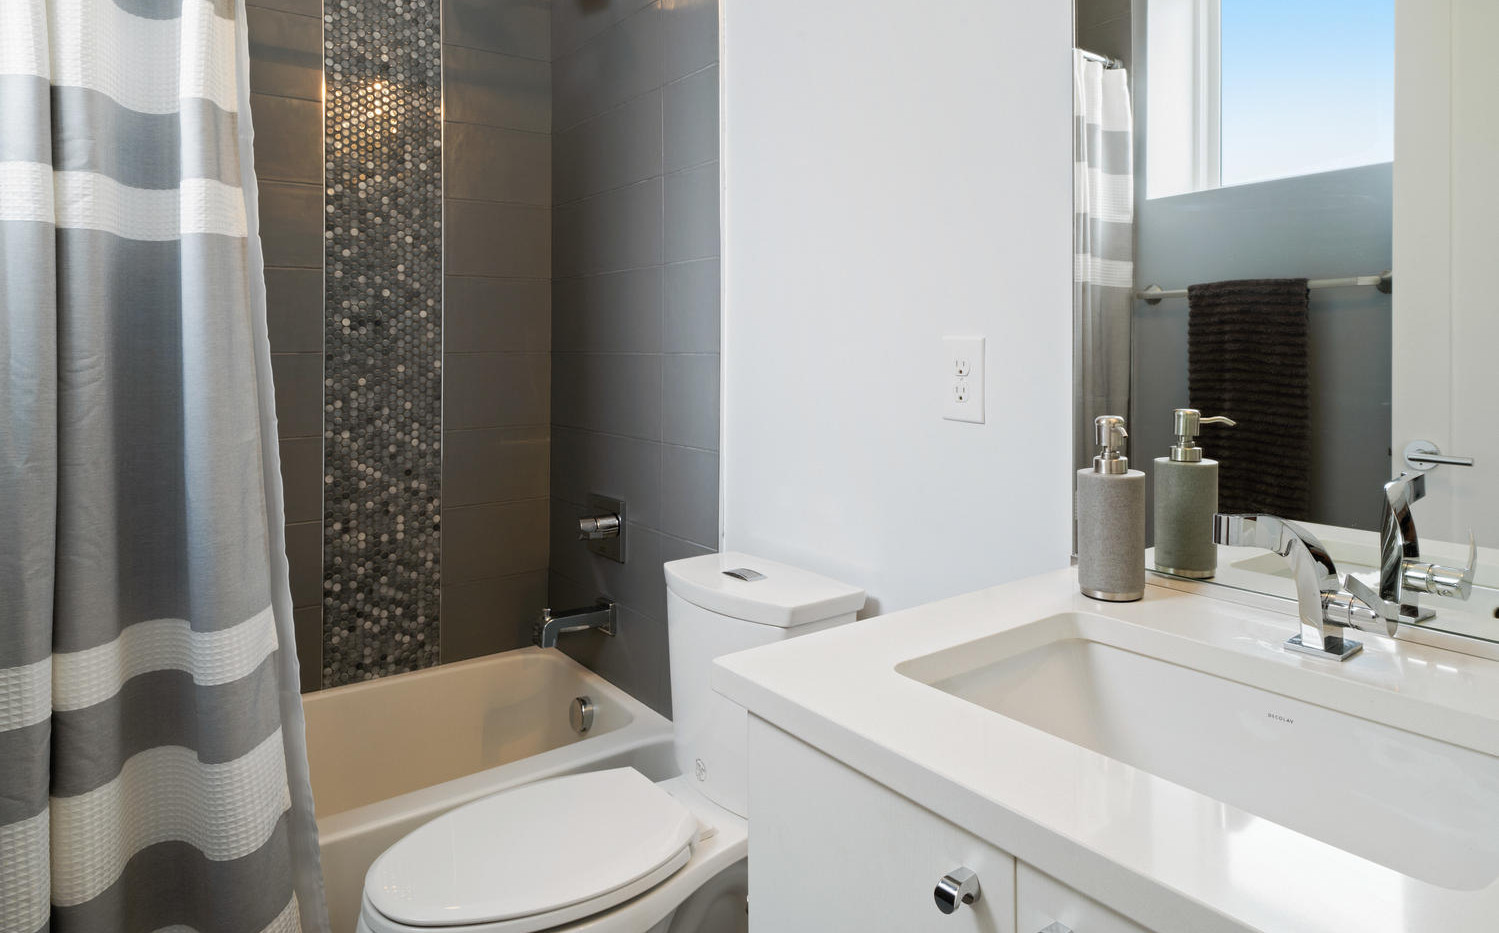 3424 W 18th Avenue-large-020-015-Bathroo